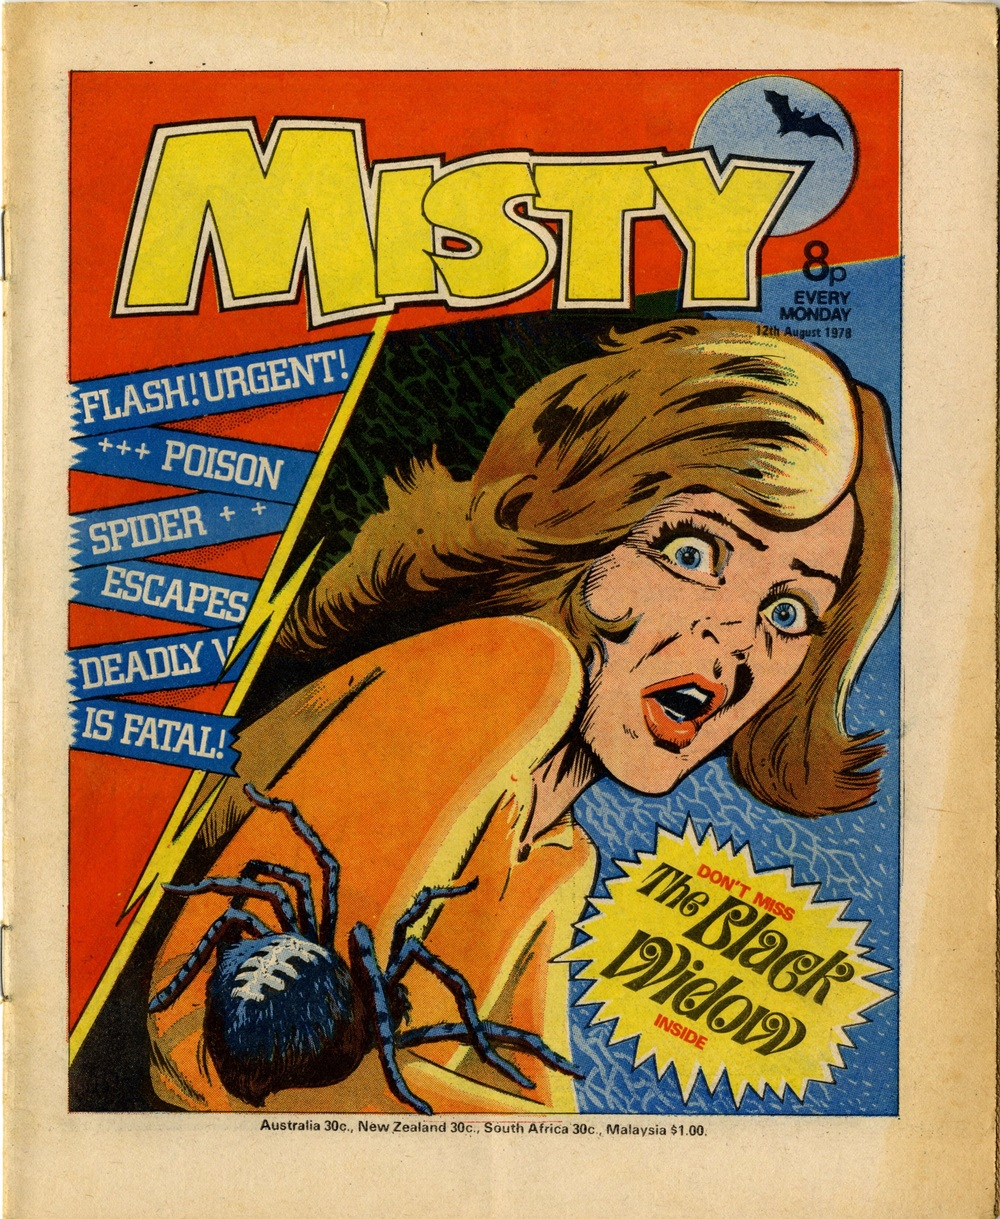 12 August 1978: Misty (The Black Widow: Jaume Rumeu (artist))